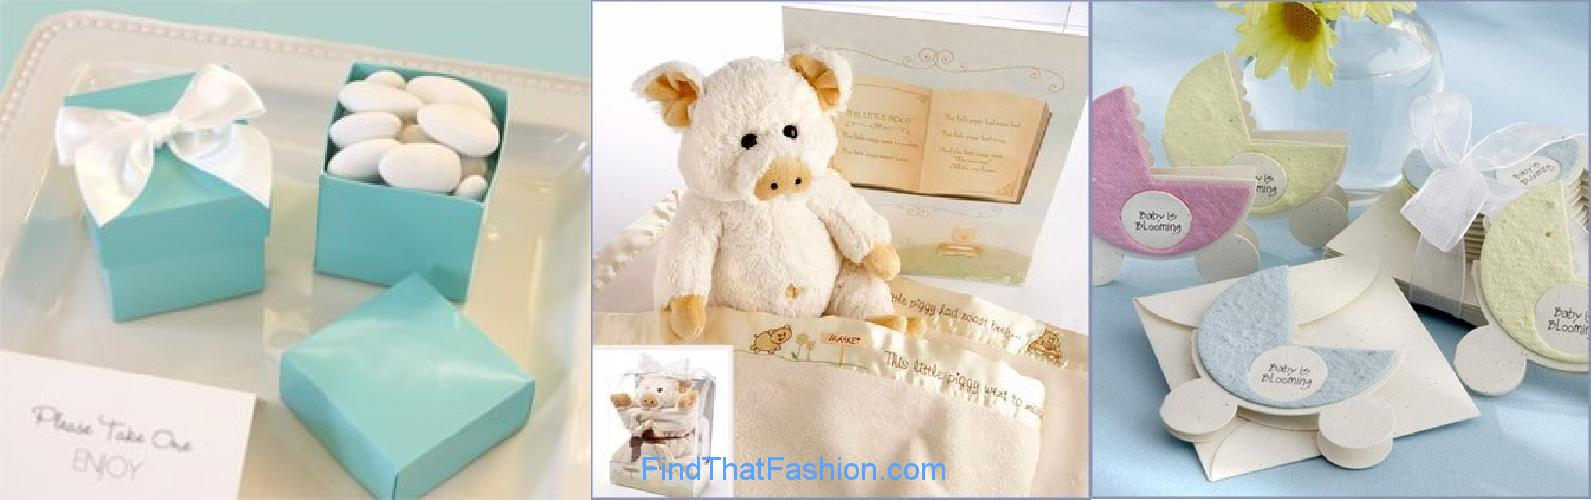 PrettyBabyGifts Baby Shower Gifts